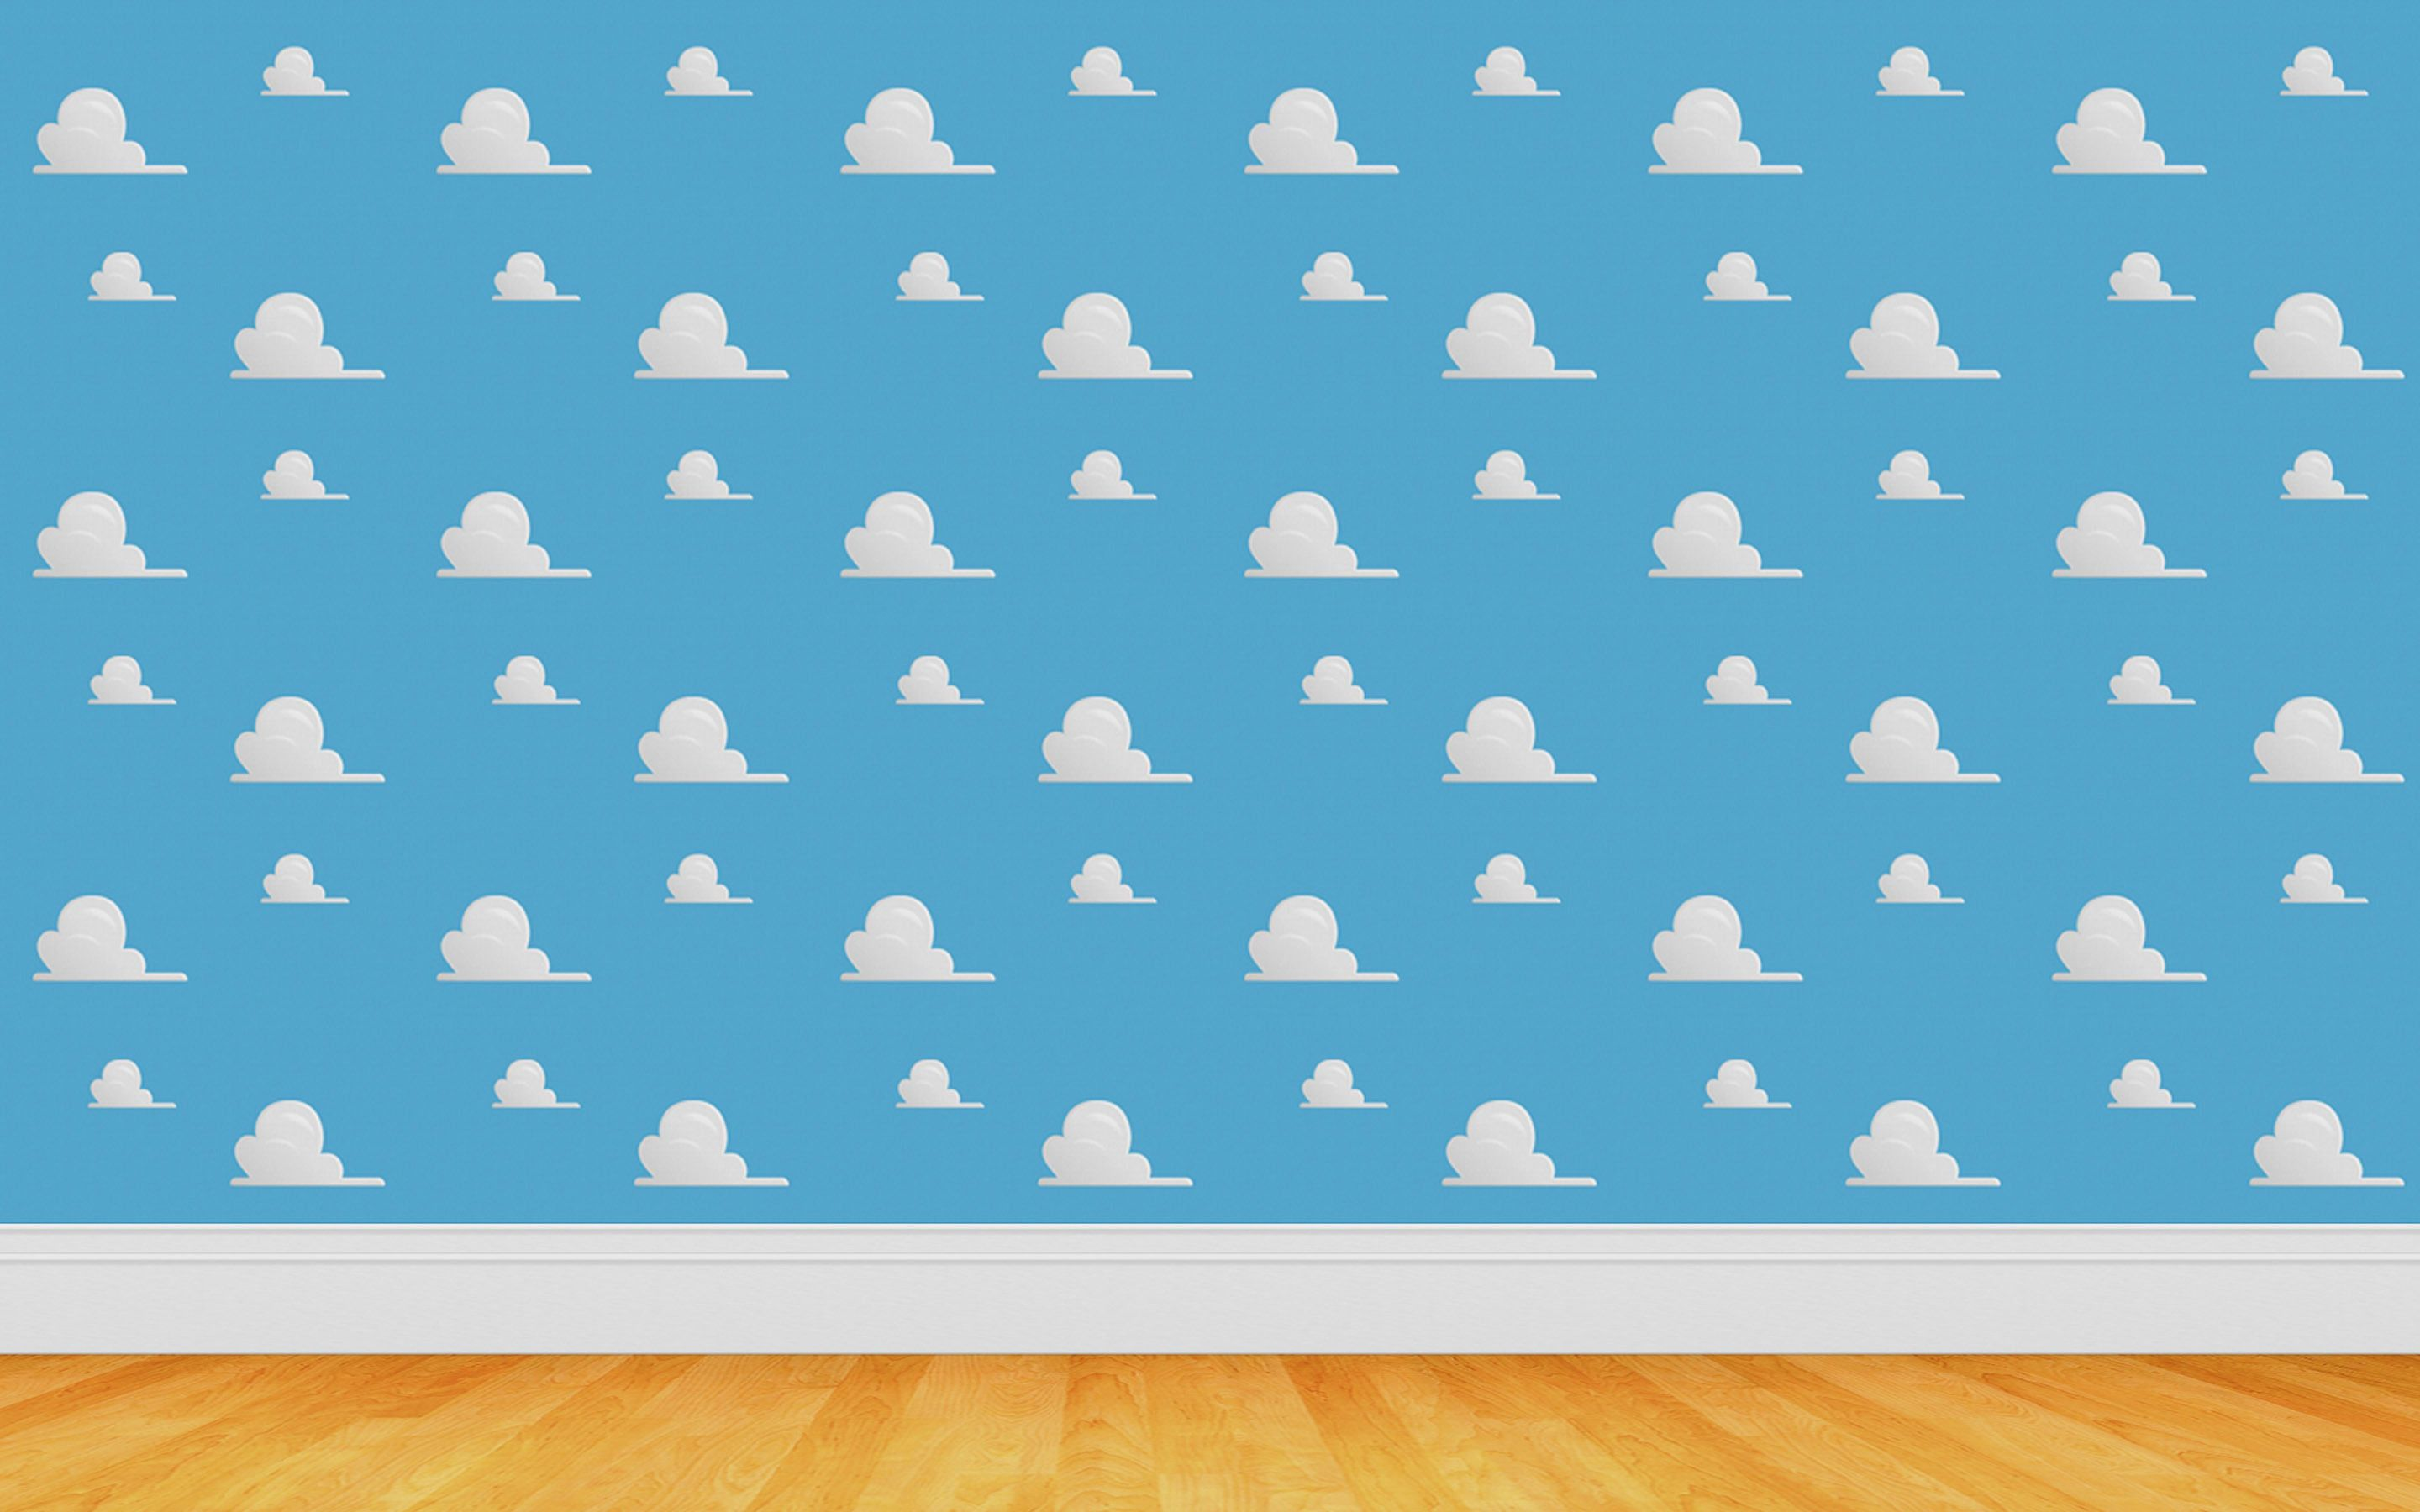 Toy Story Wallpapers Toy Story Room Toy Story Clouds Printable Toys